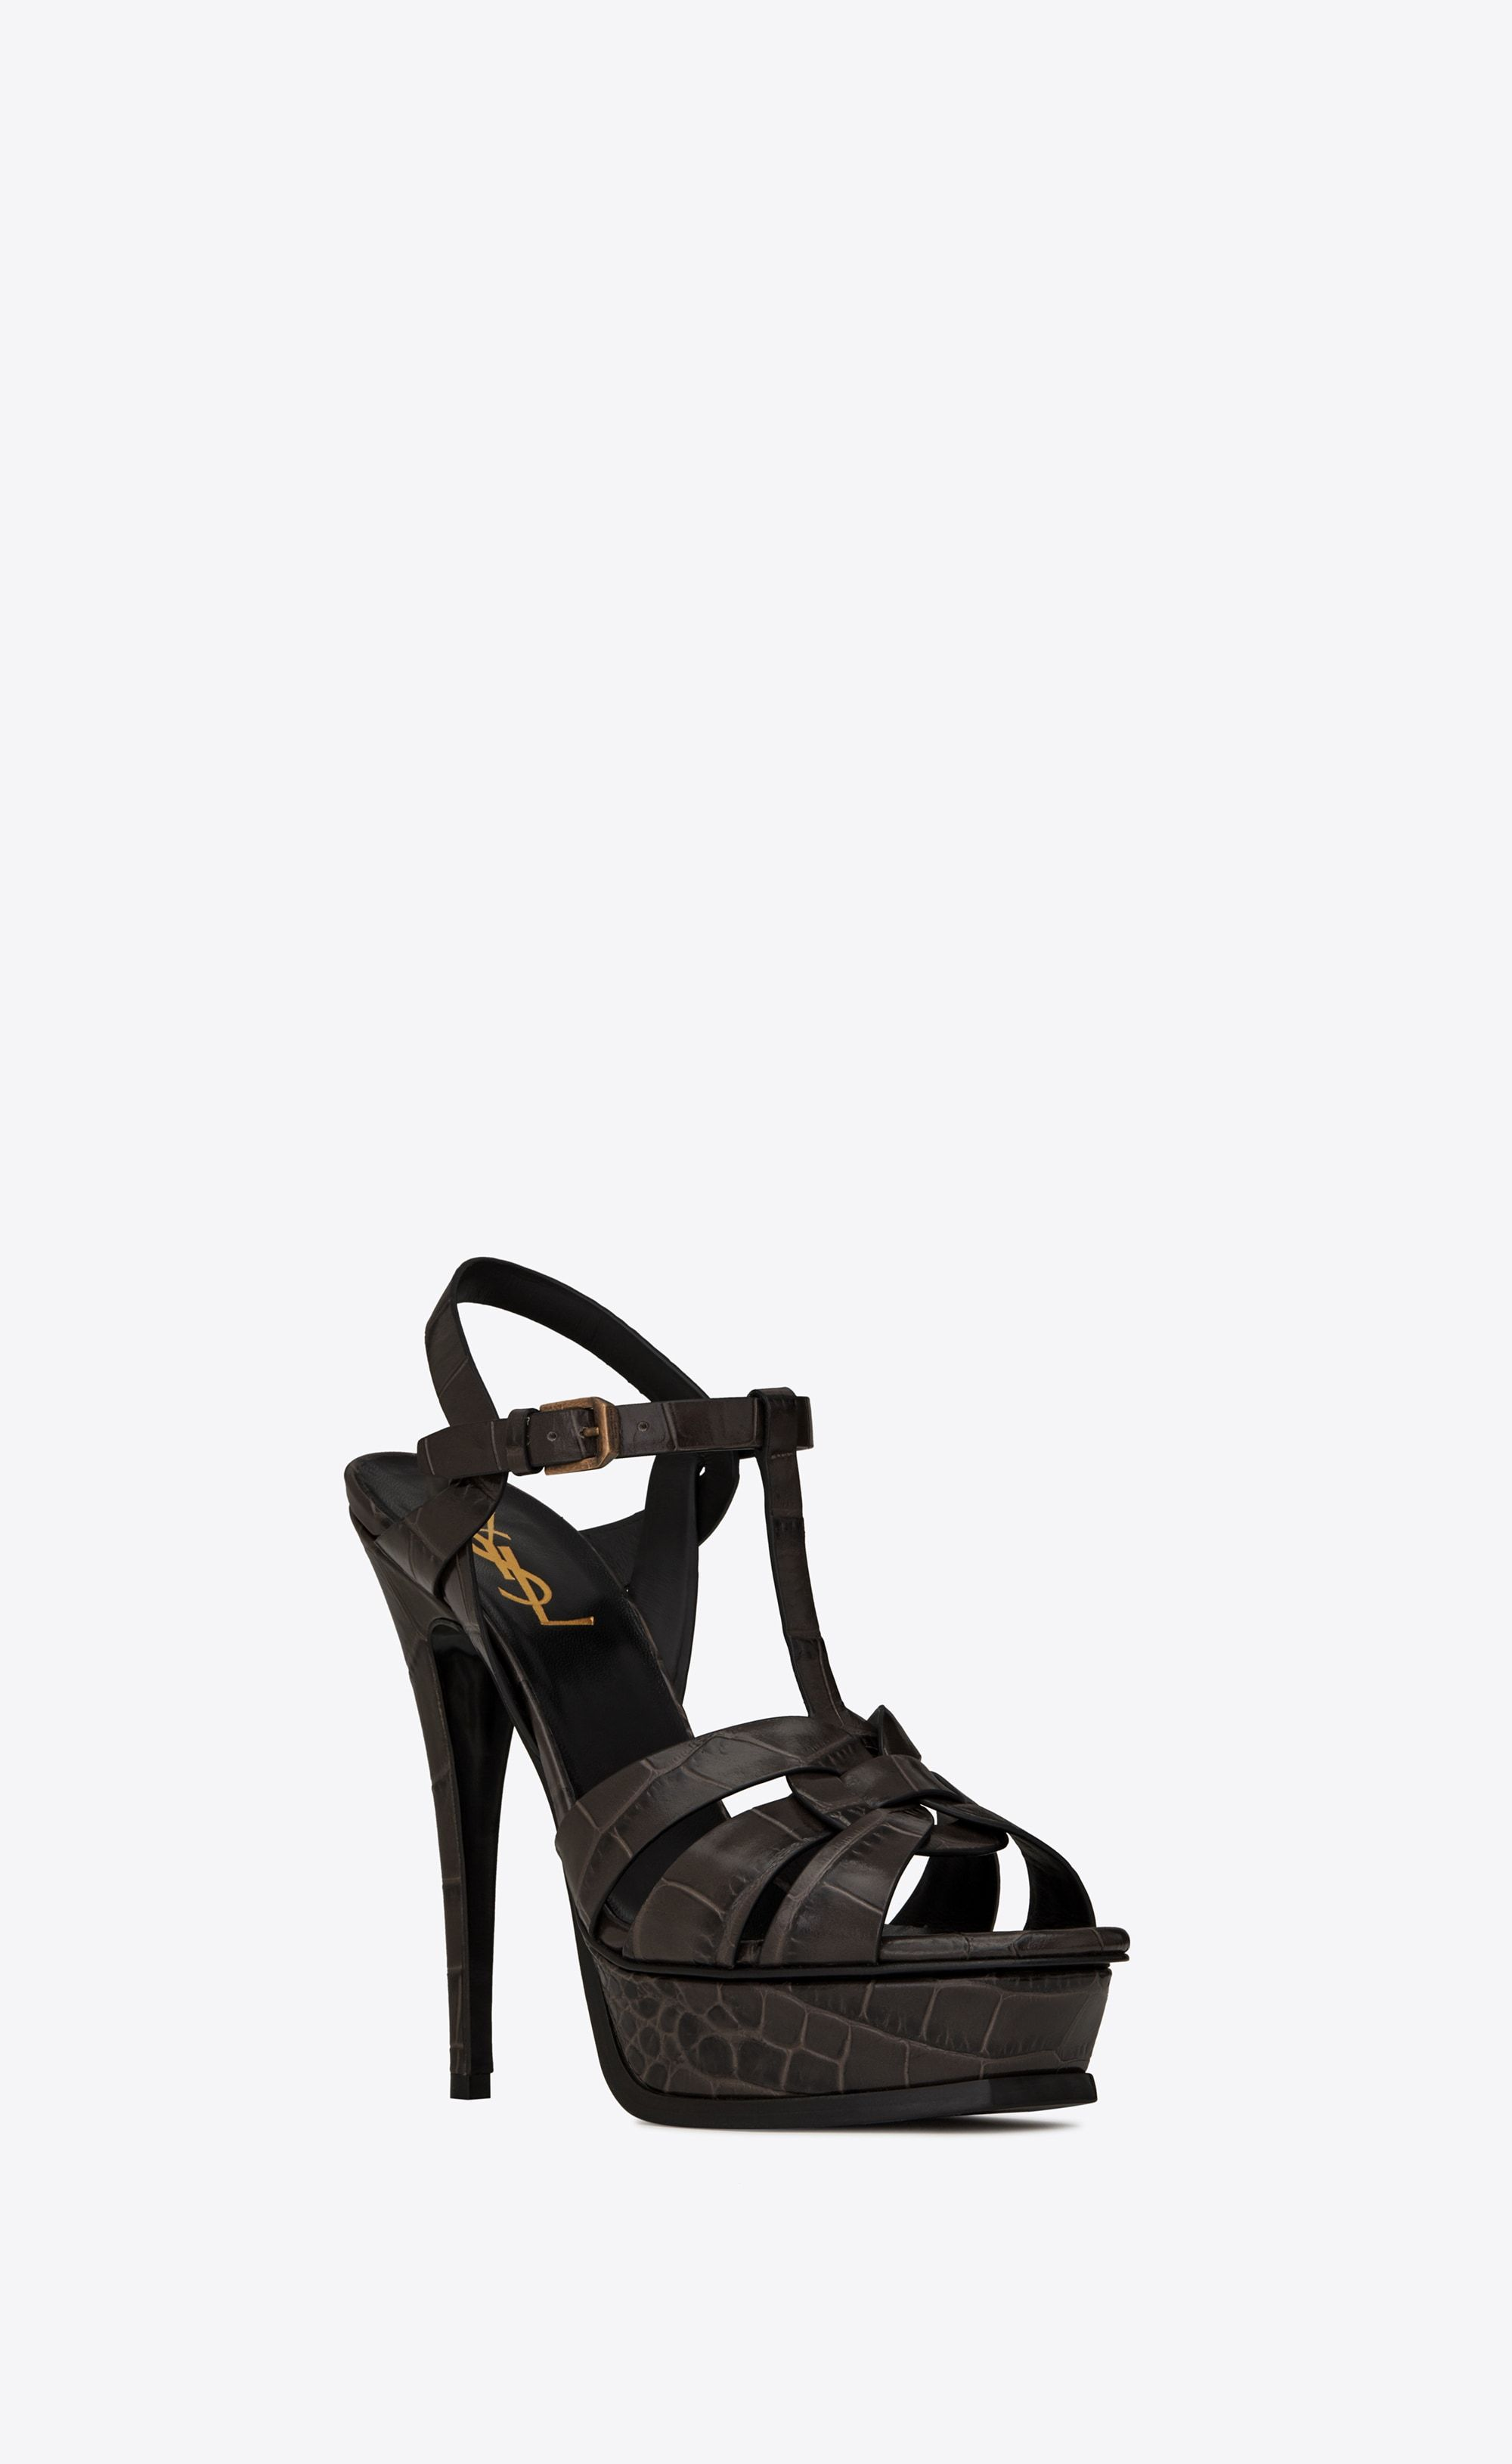 51f4c98538 TRIBUTE Sandals in embossed crocodile leather in 2019 | Shoes ...